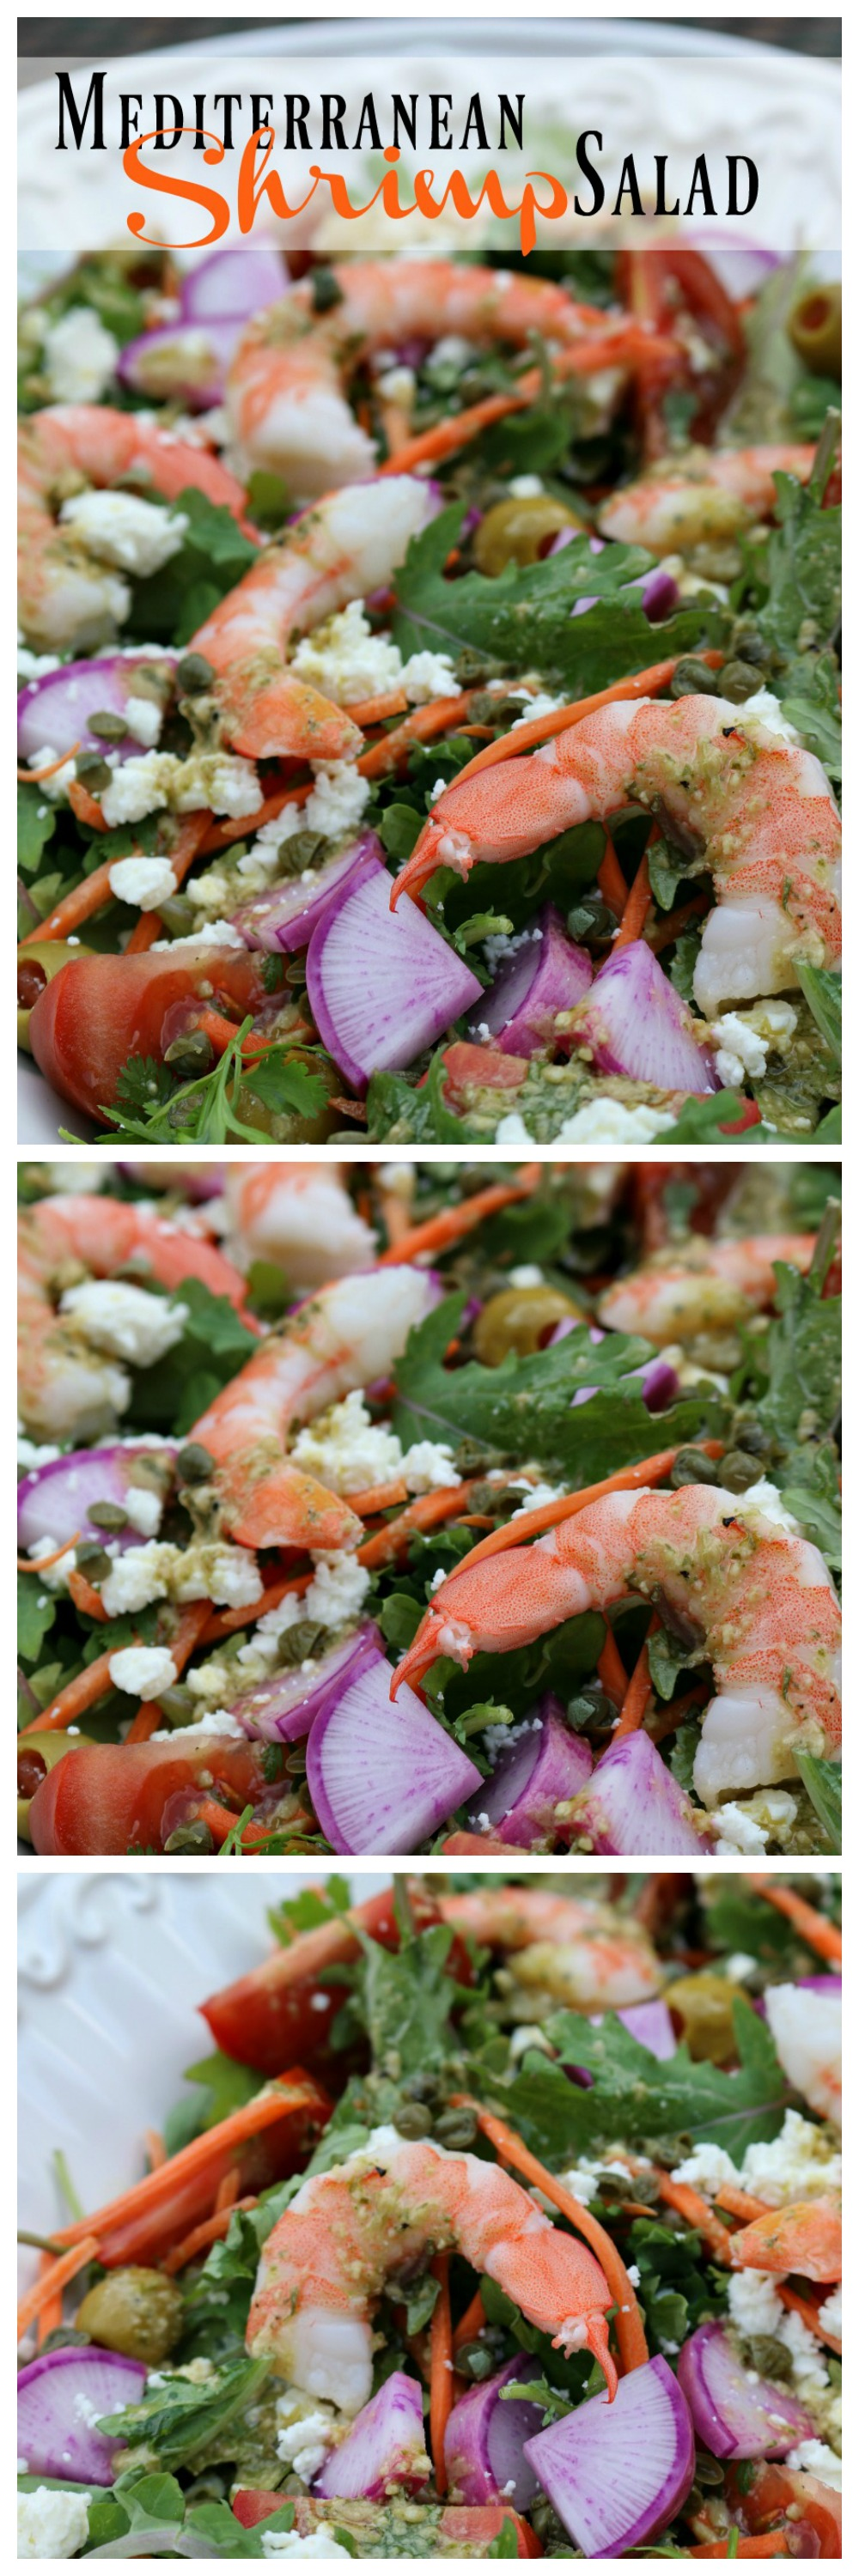 Mediterranean Shrimp Salad CeceliasGoodStuff.com Good Food for Good People